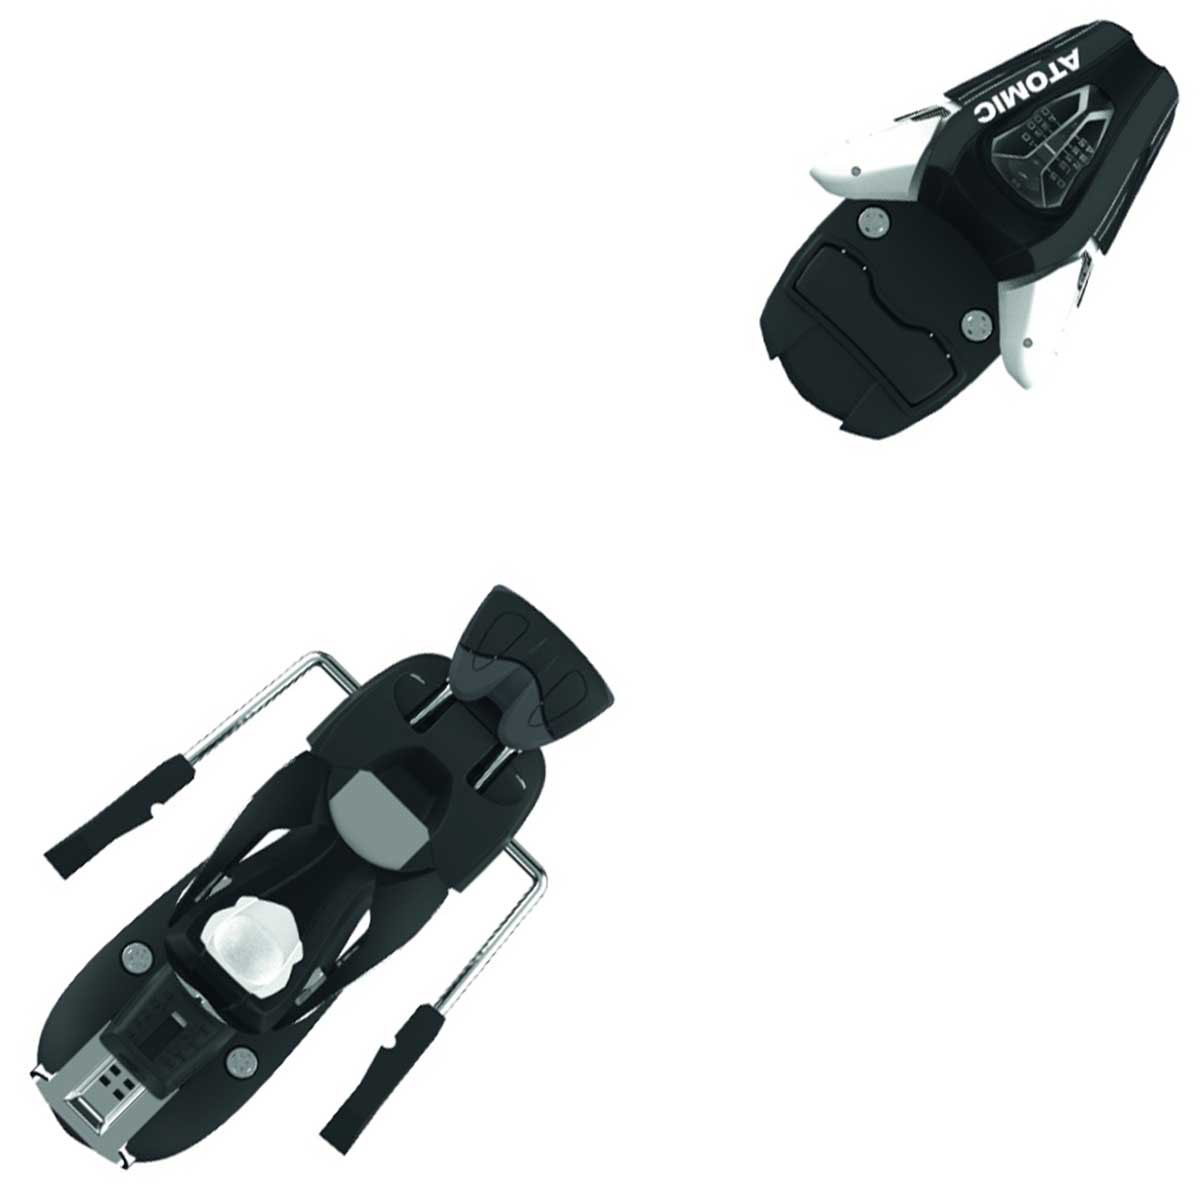 Atomic C 5 junior ski binding in one color